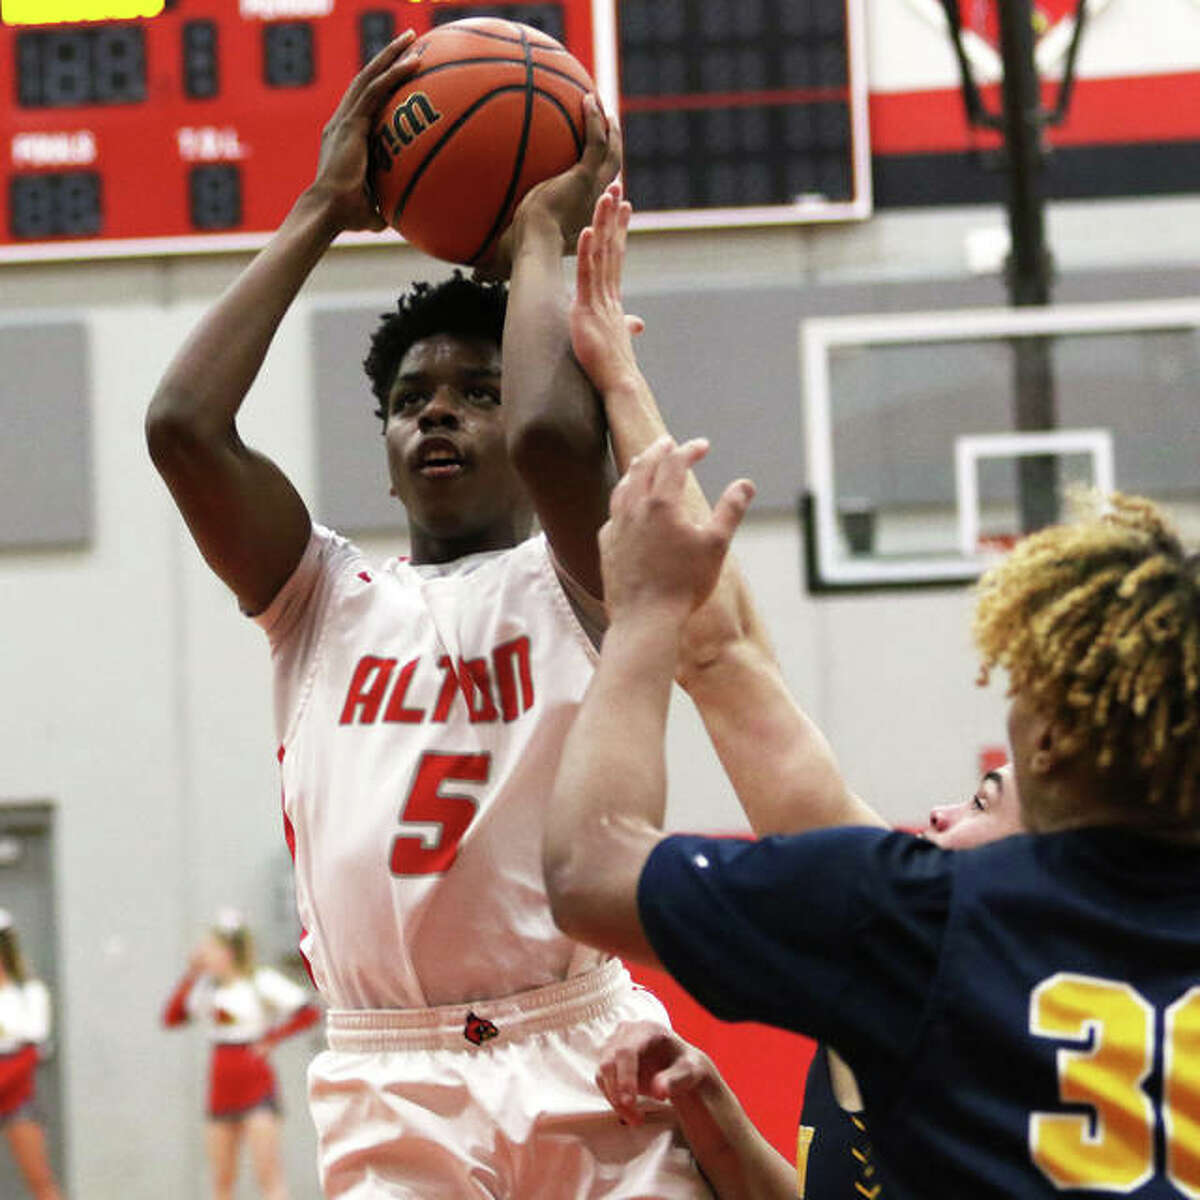 Alton's Camren Edwards (5) puts up a shot in the lane against the O'Fallon Panthers on Tuesday night in Godfrey.